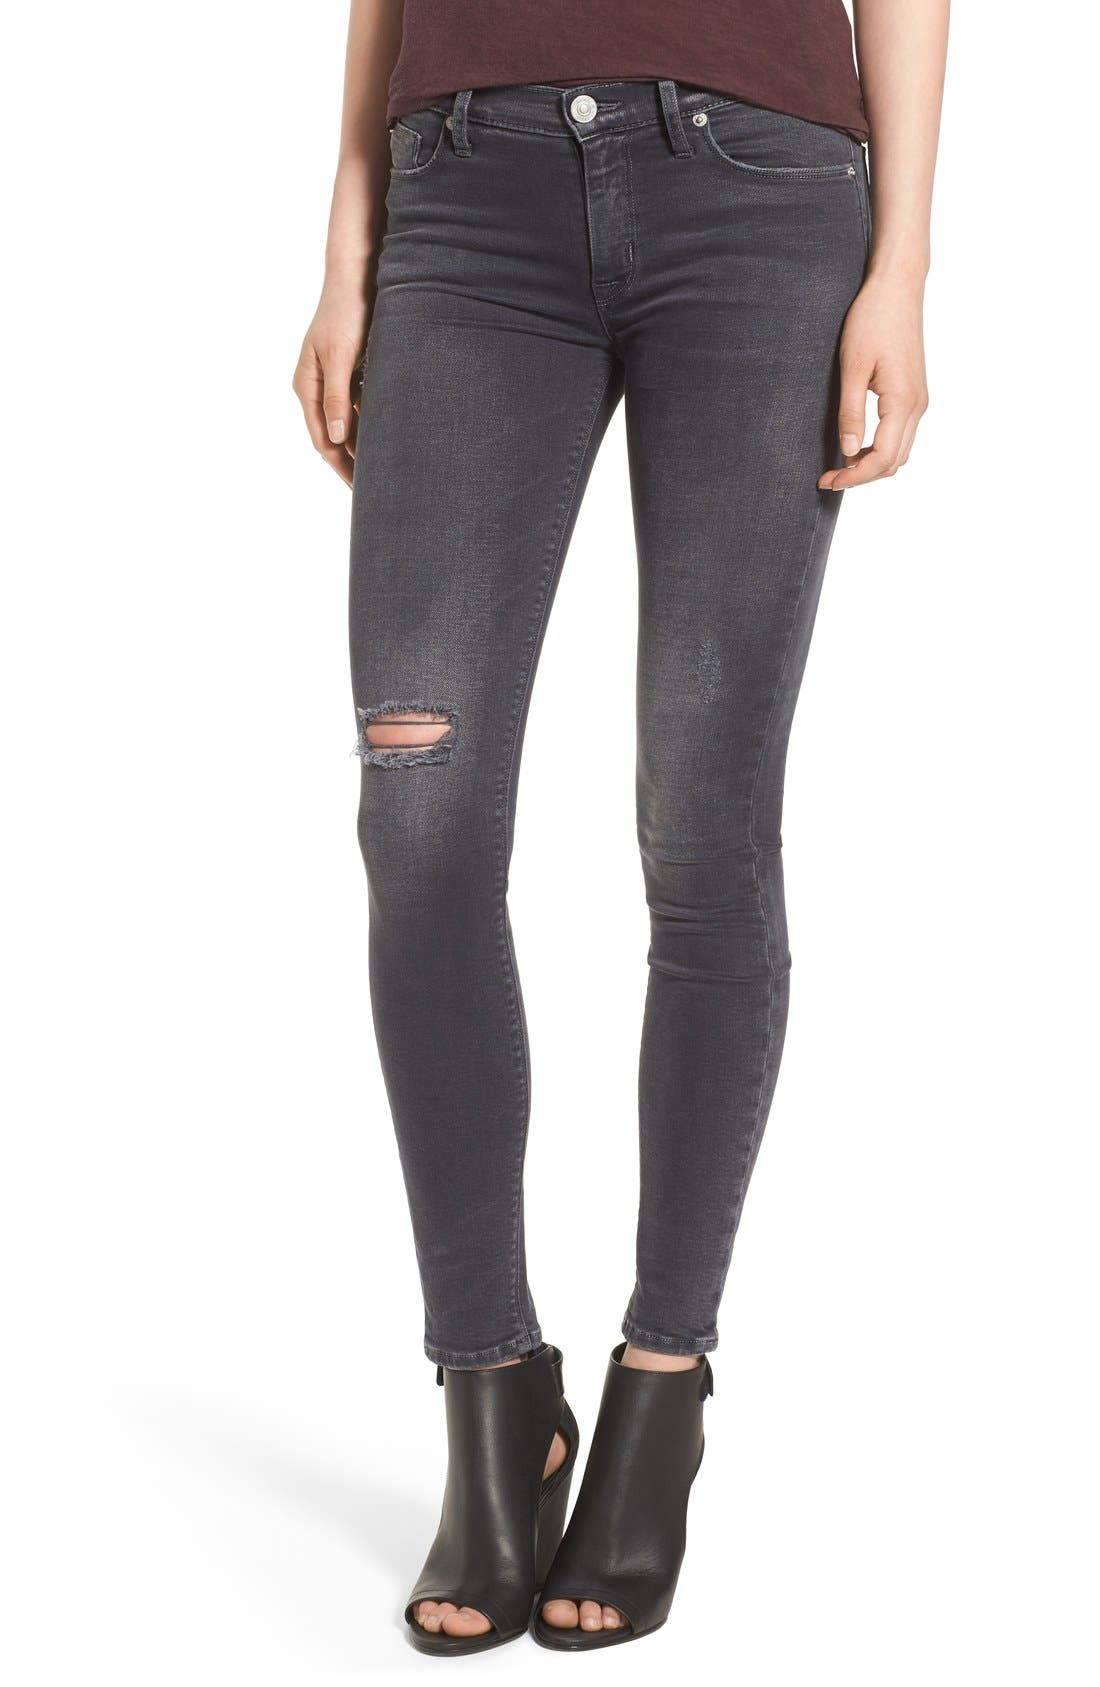 Alternate Image 1 Selected - Hudson Jeans Krista Ankle Jeans (Stormy Horizon)